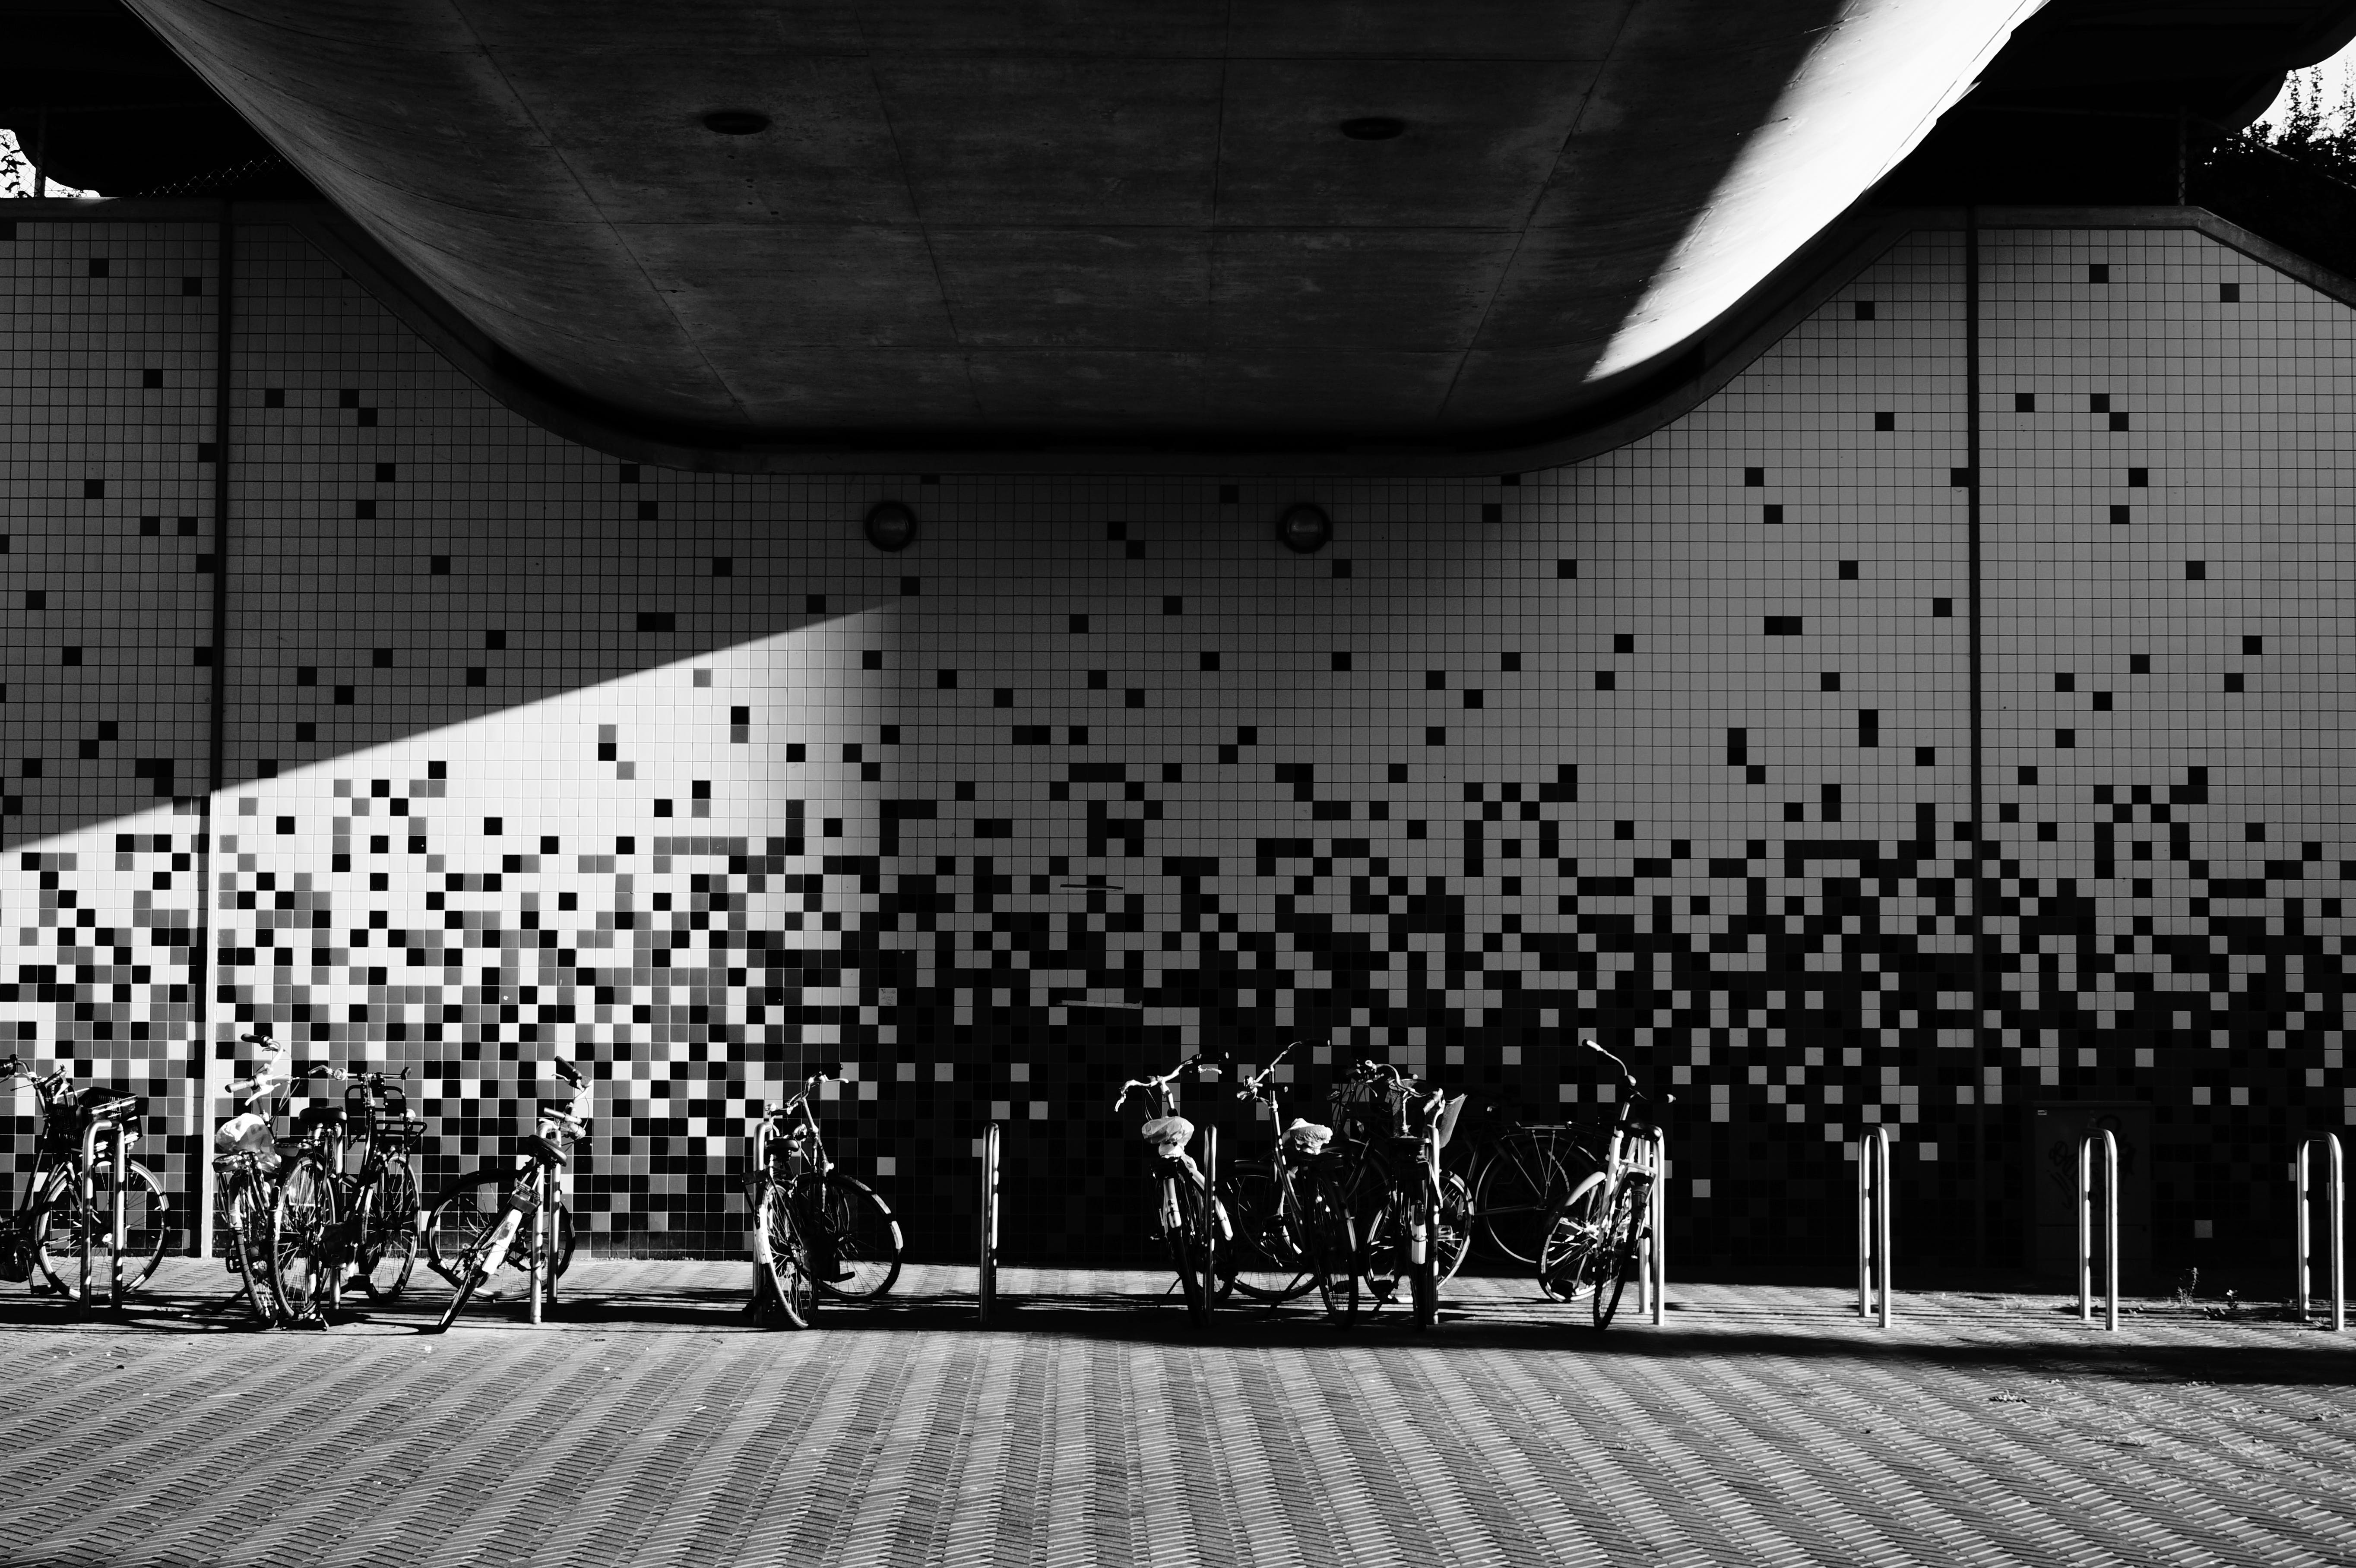 Parked Bikes Under Building in Grayscale Photography